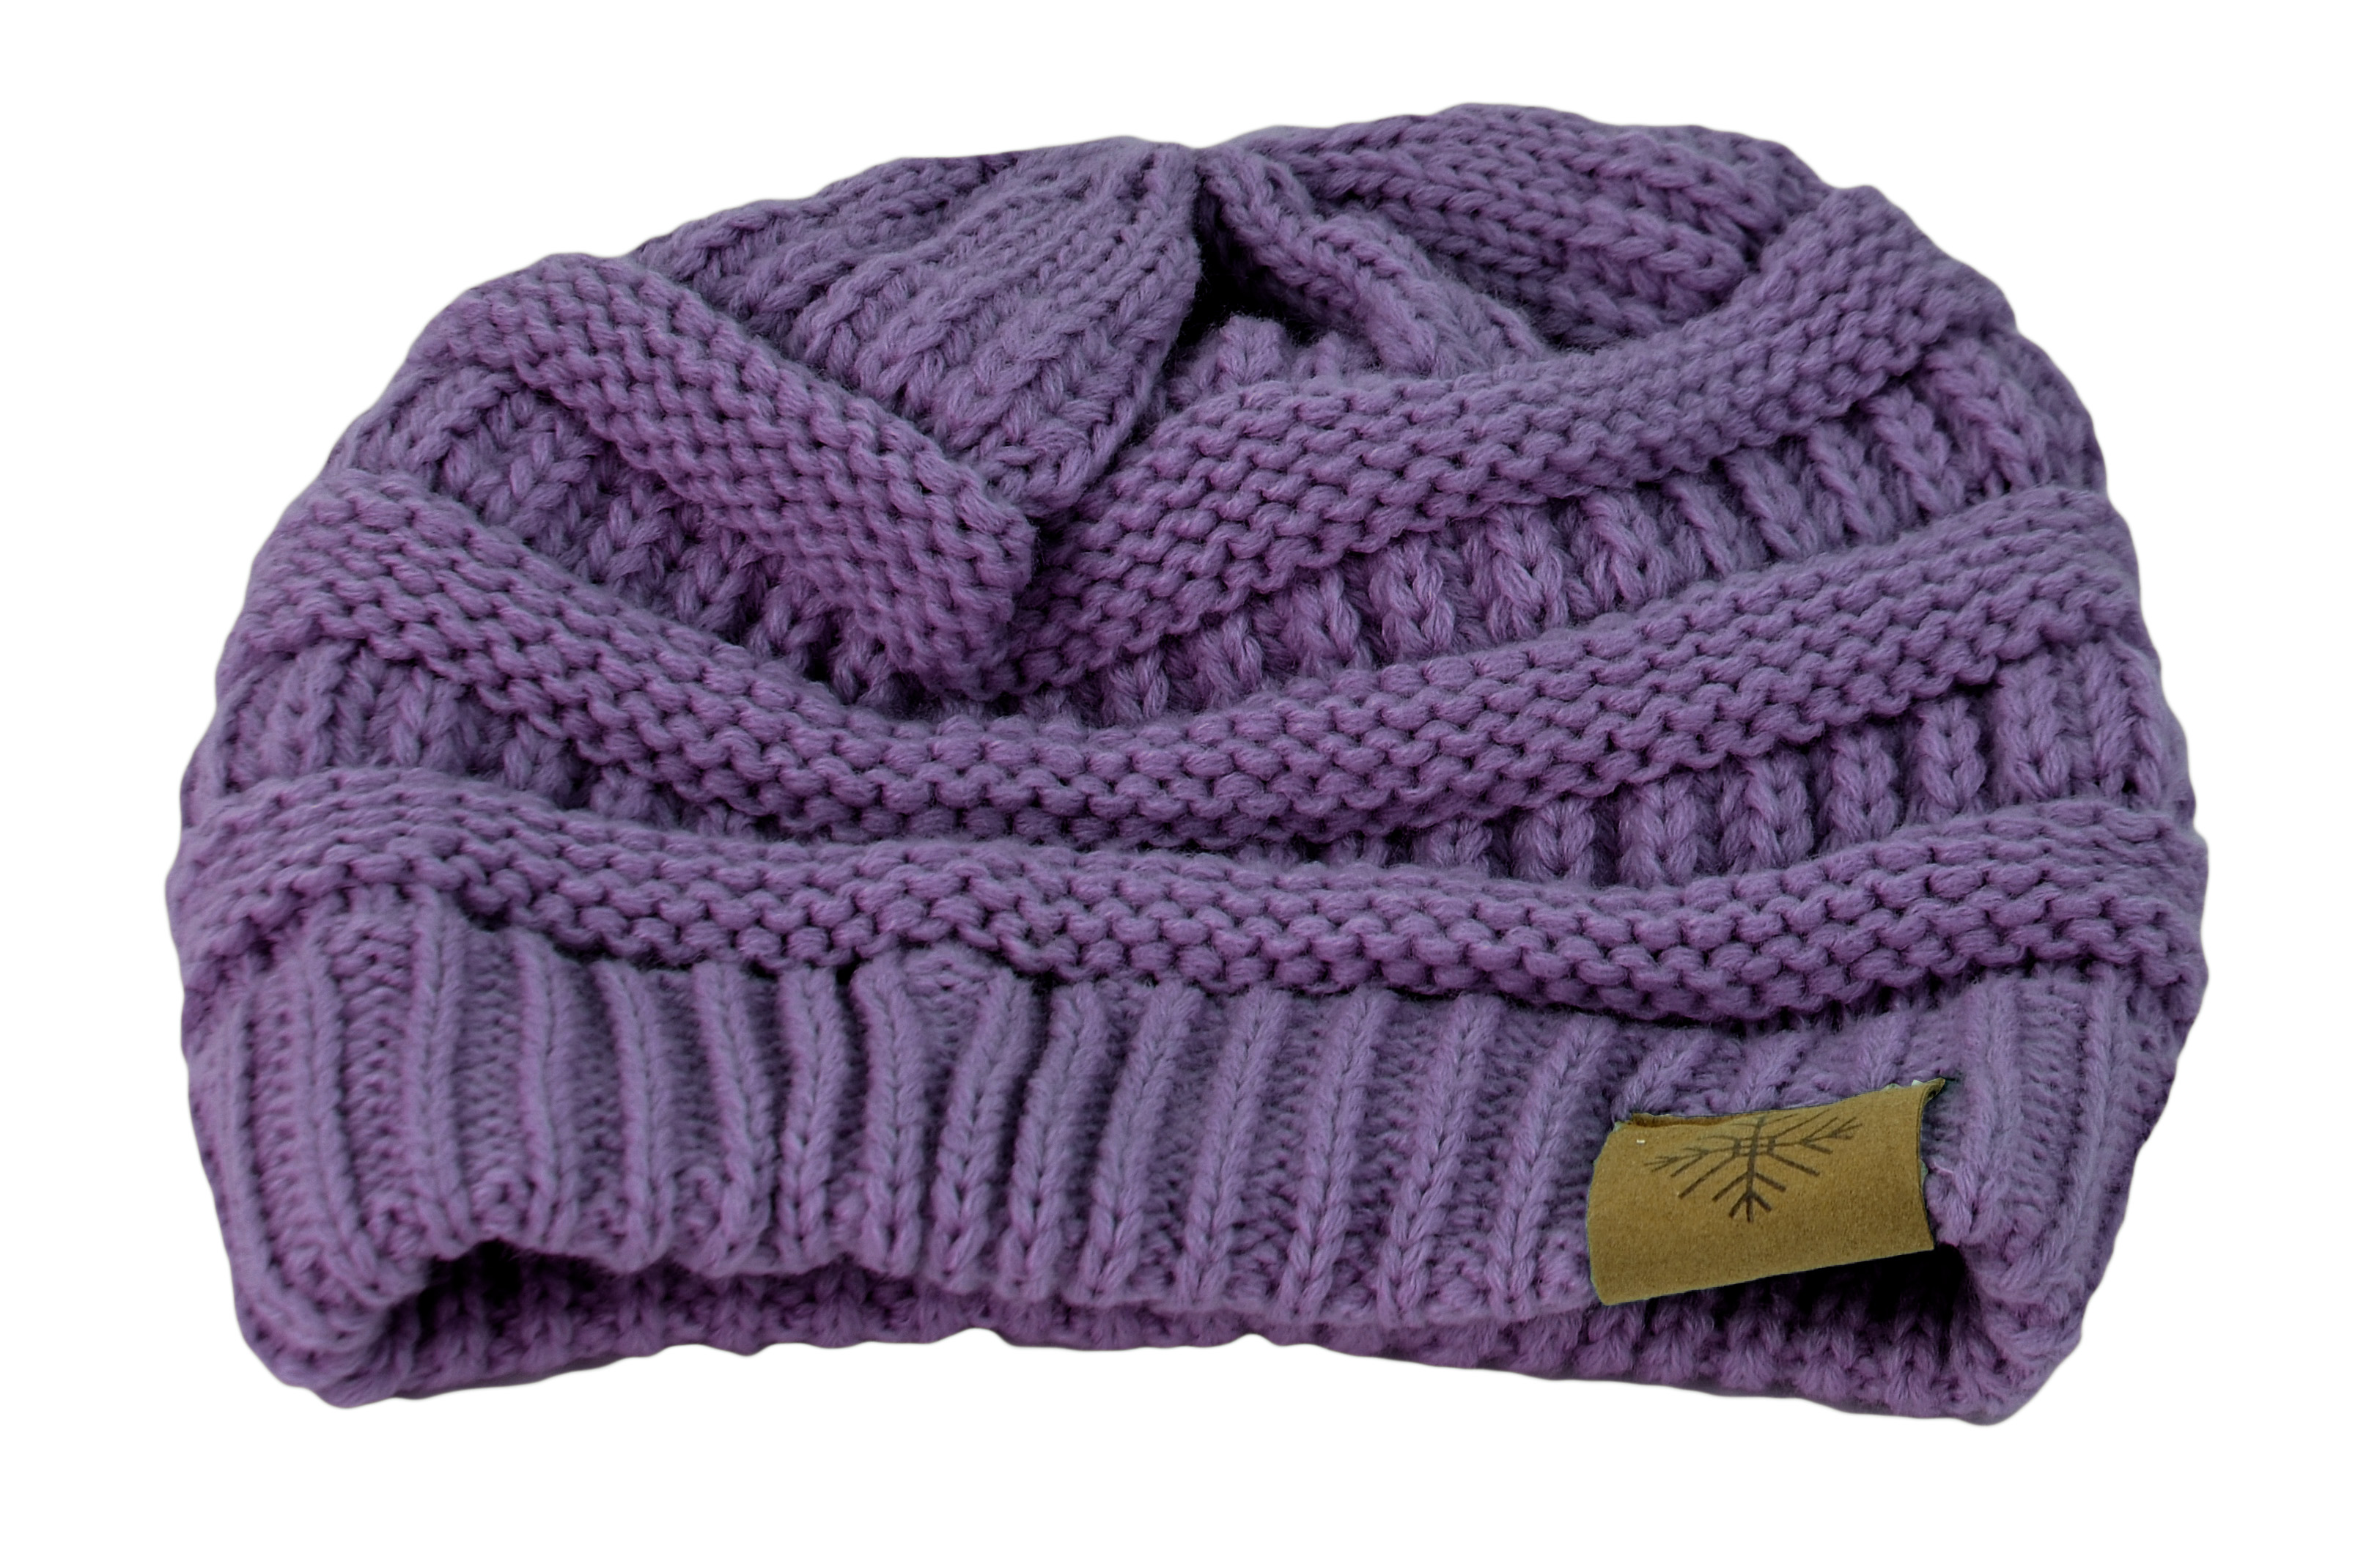 Belle Donne - Women's Winter Fleece Lined Cable Knitted Pom Pom Beanie Hat - Lavender-II